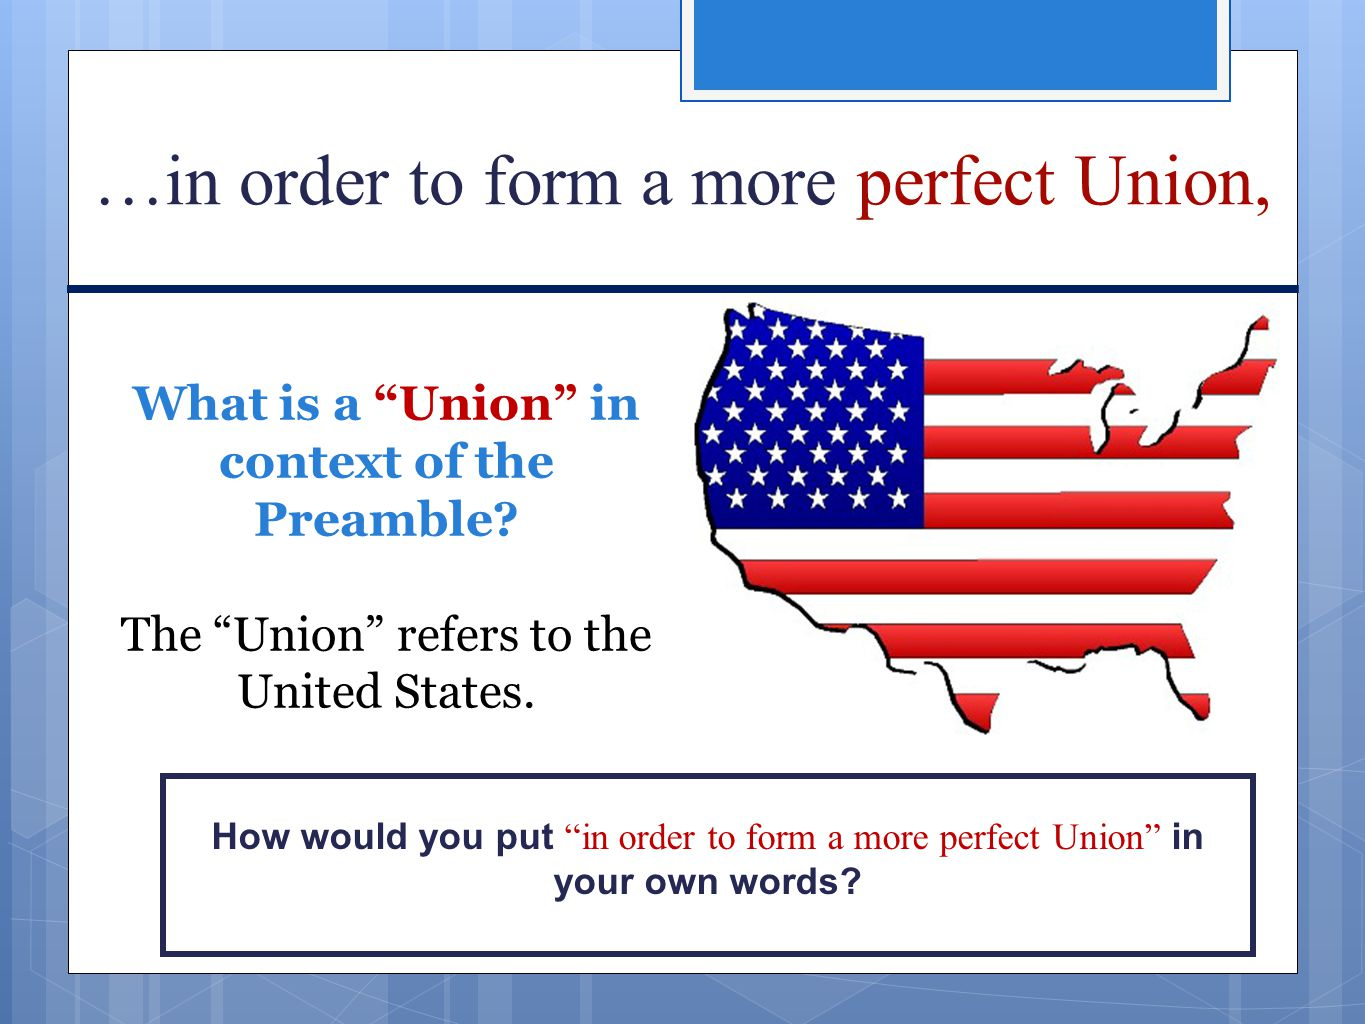 What is a Union in context of the Preamble